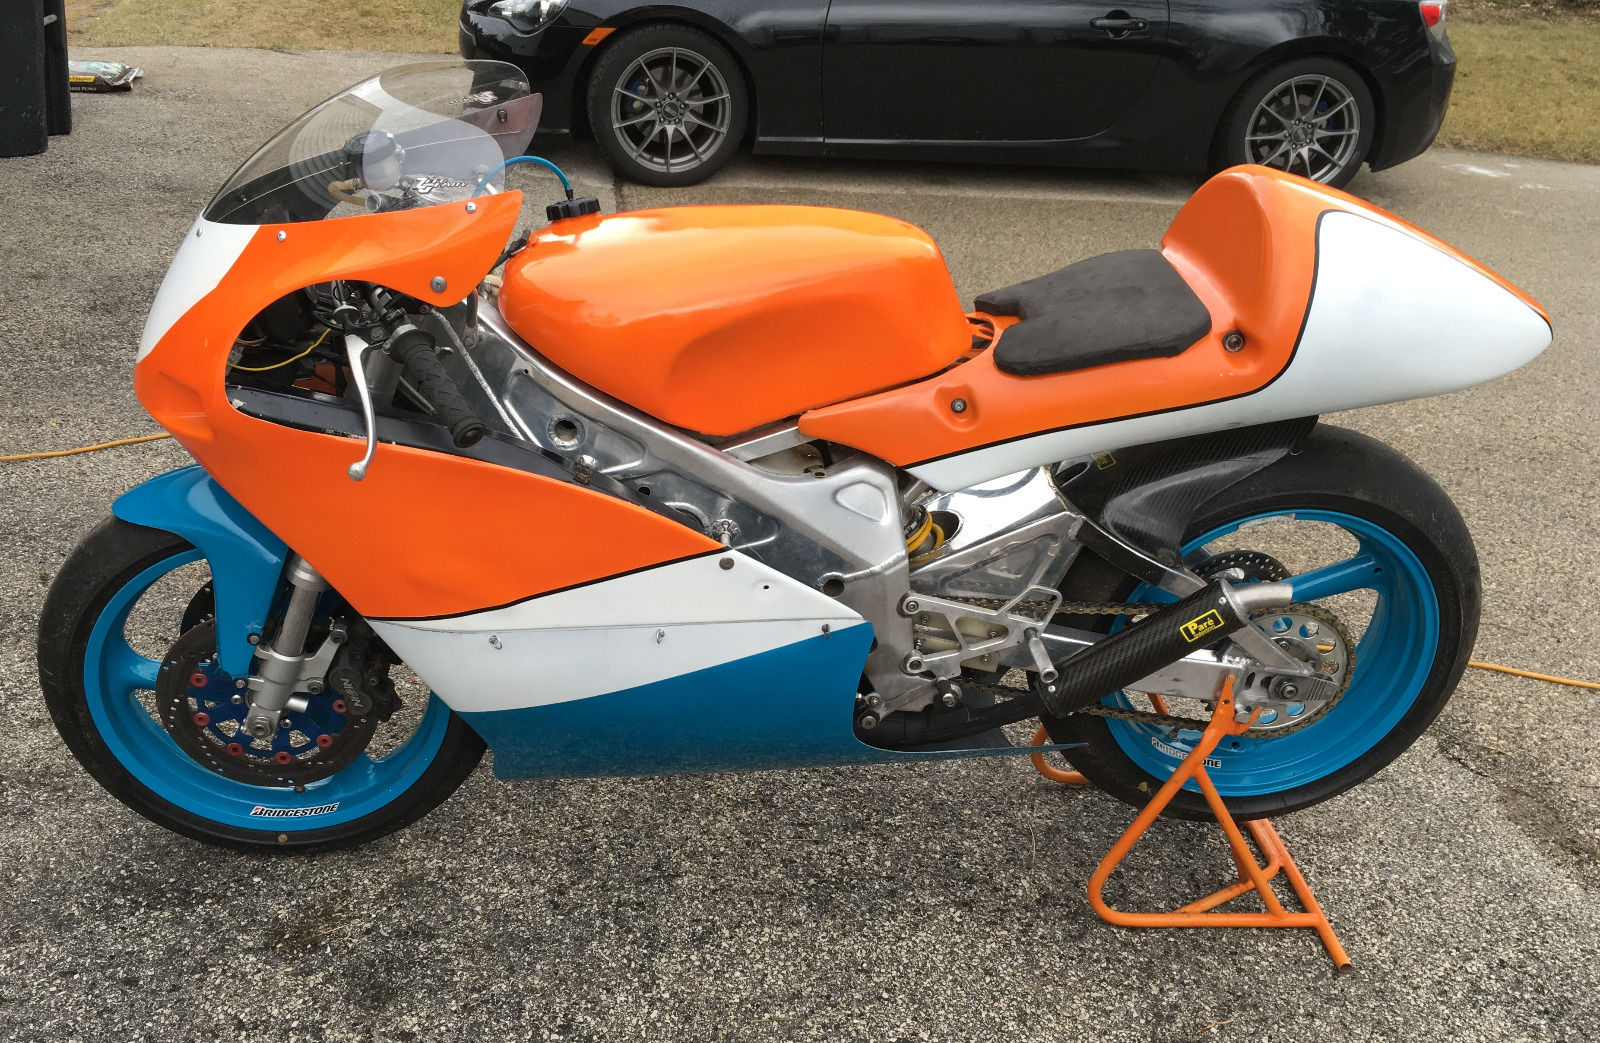 TZ250 Archives - Page 2 of 5 - Rare SportBikes For Sale